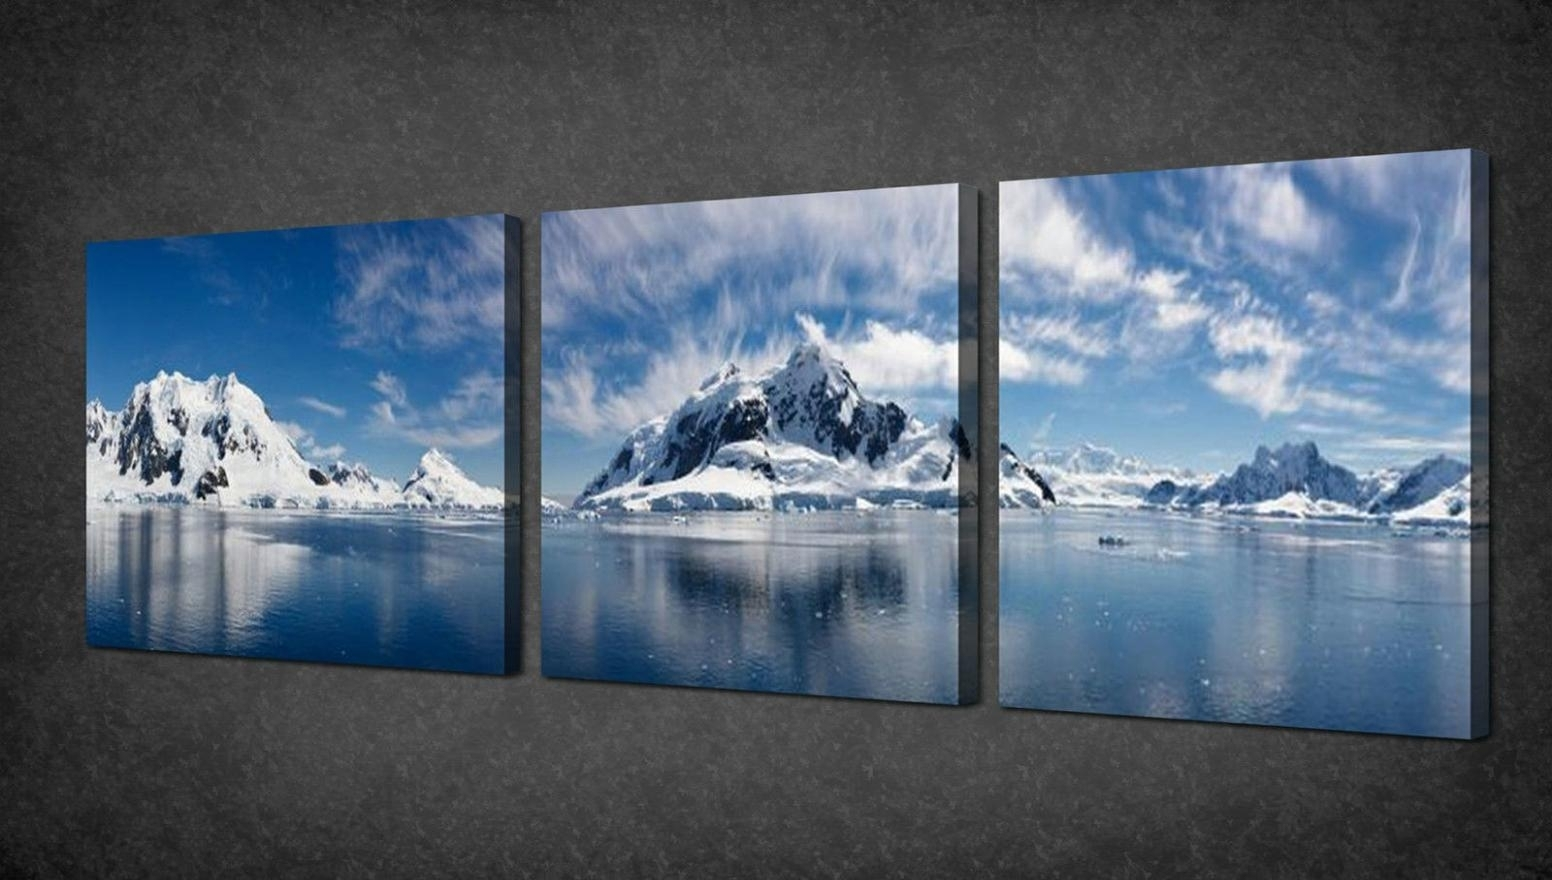 20 Best Collection Of Panoramic Wall Art With Regard To Most Up To Date Next Canvas Wall Art (View 3 of 15)